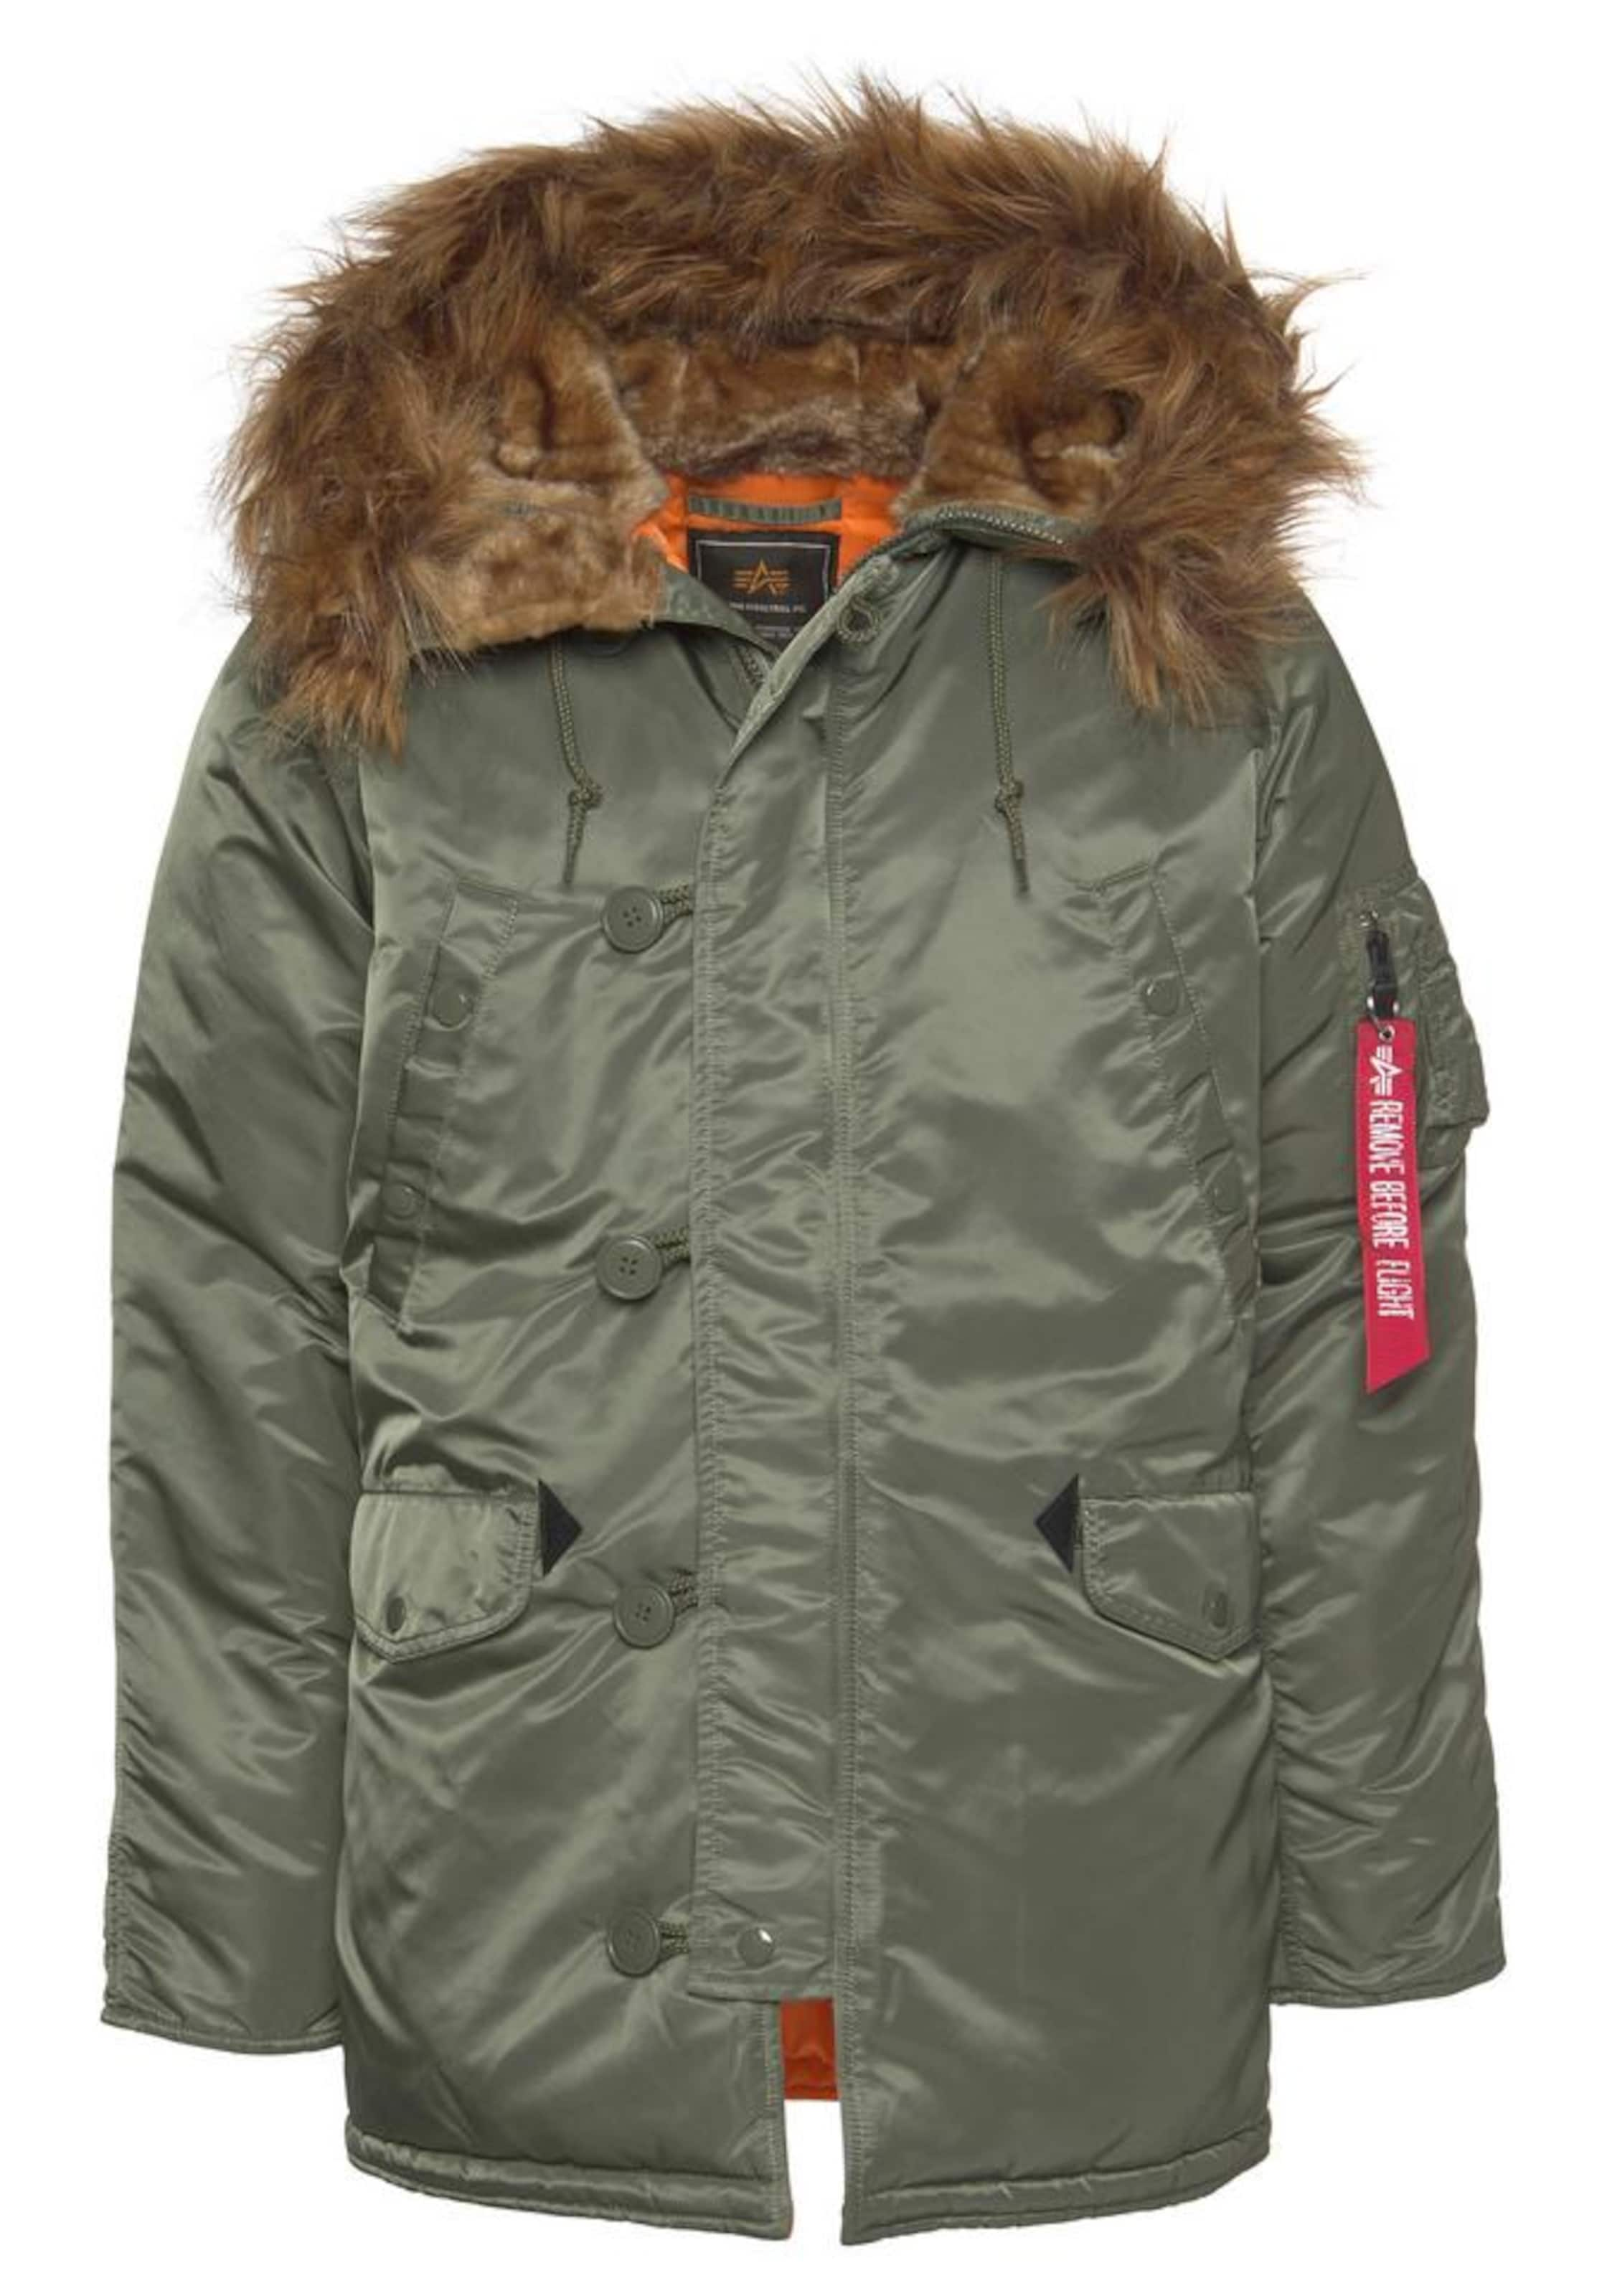 OlivOrange Parka Alpha Industries Vf 59' 'n3b In Ok8nXN0PZw